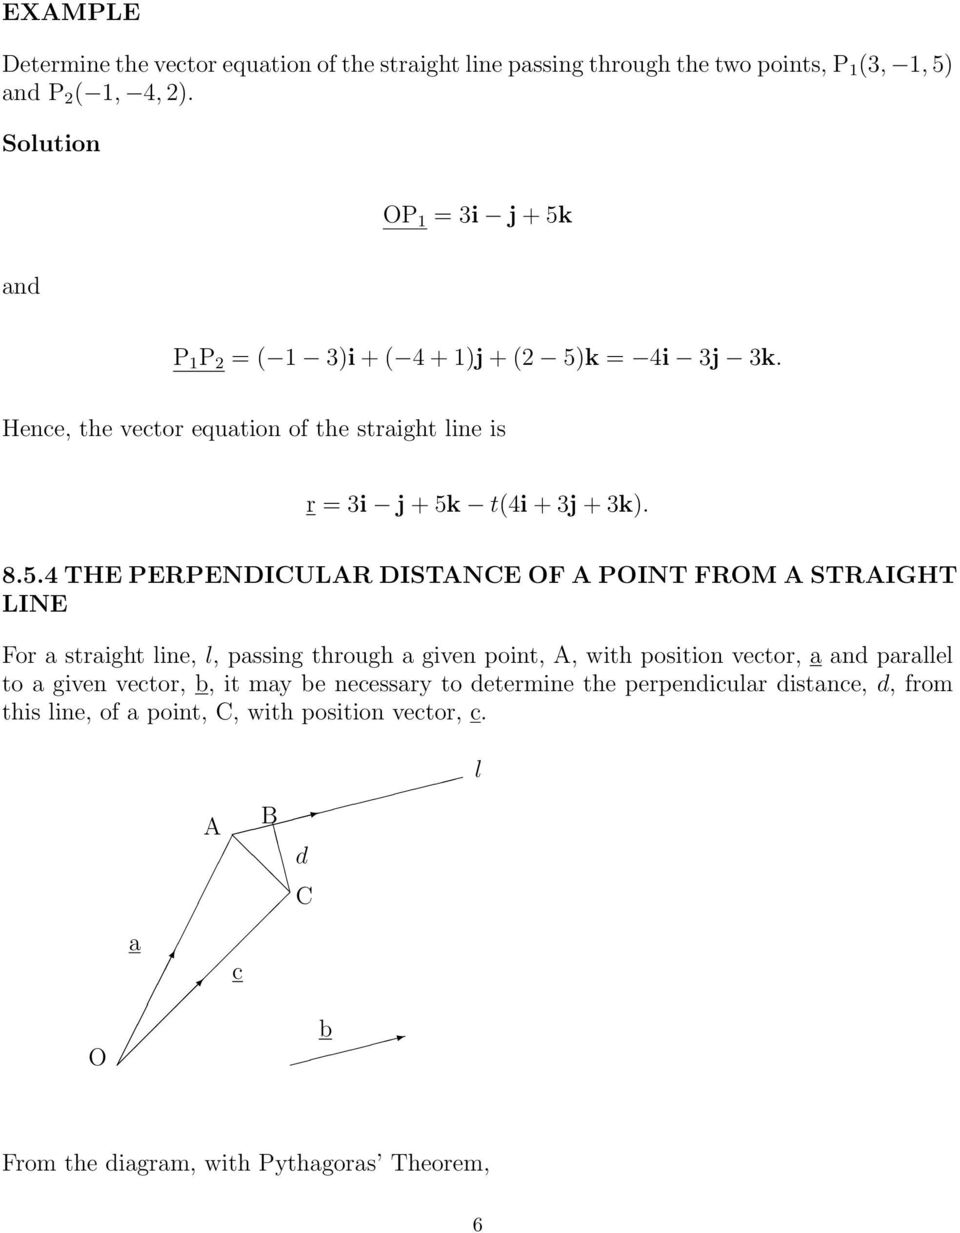 5.4 THE PERPENDICULAR DISTANCE OF A POINT FROM A STRAIGHT LINE For a straight line, l, passing through a given point, A, with position vector, a and parallel to